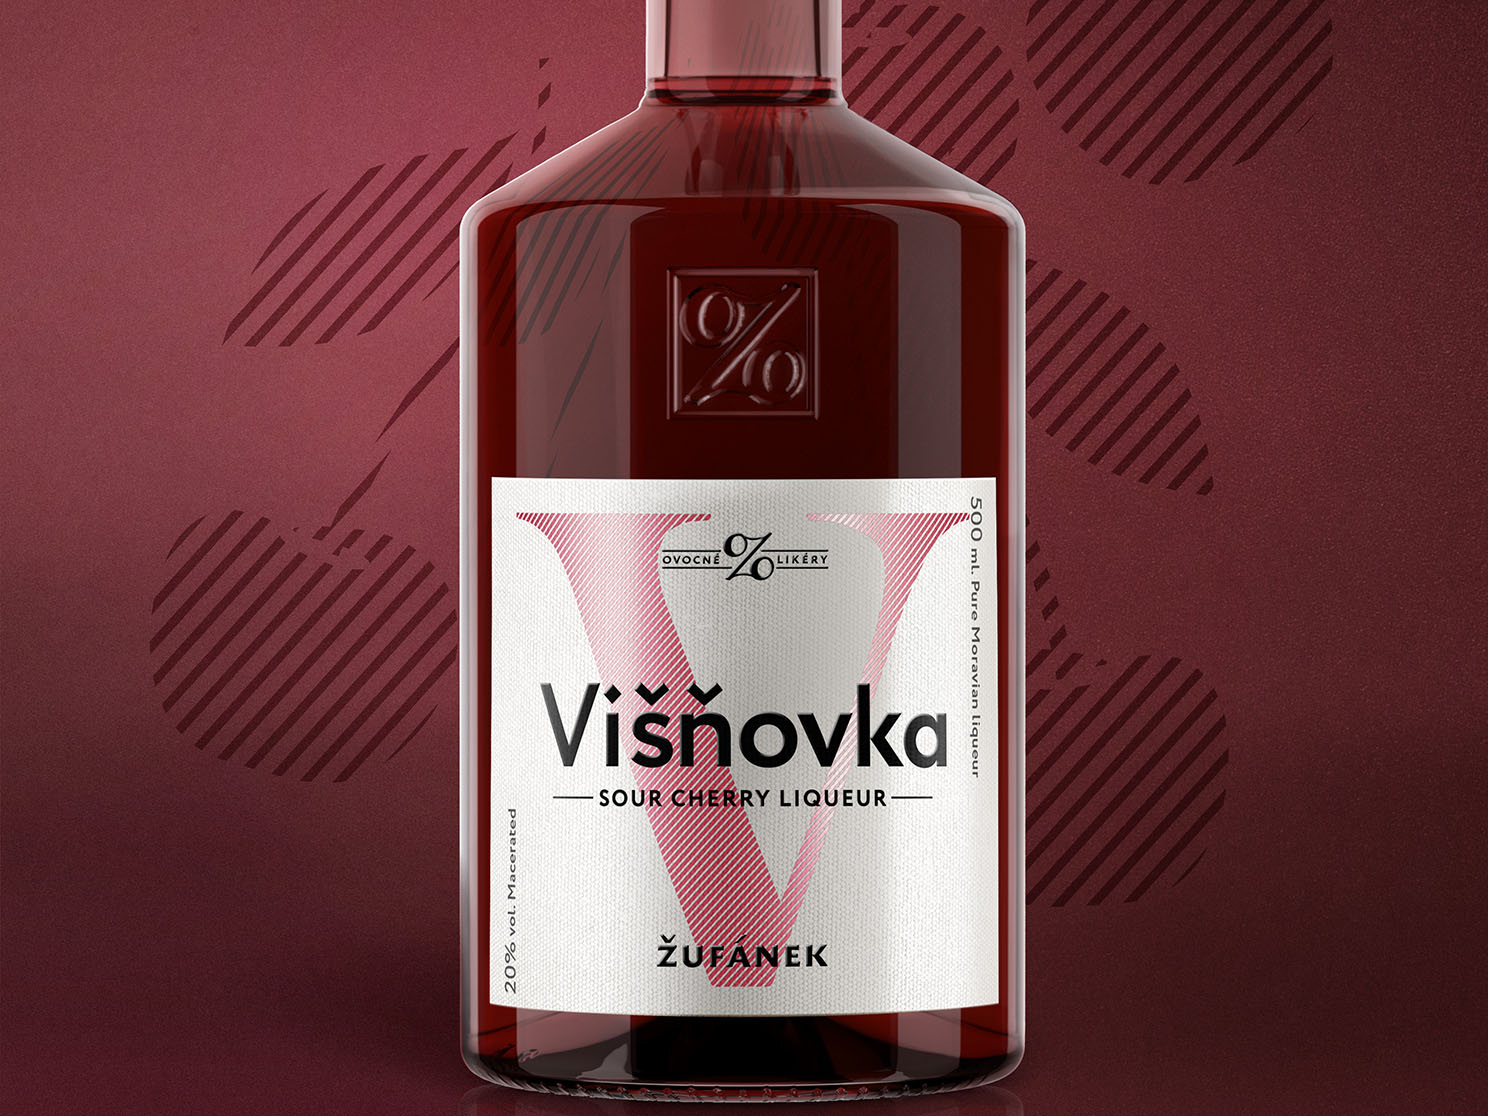 visnovka visual